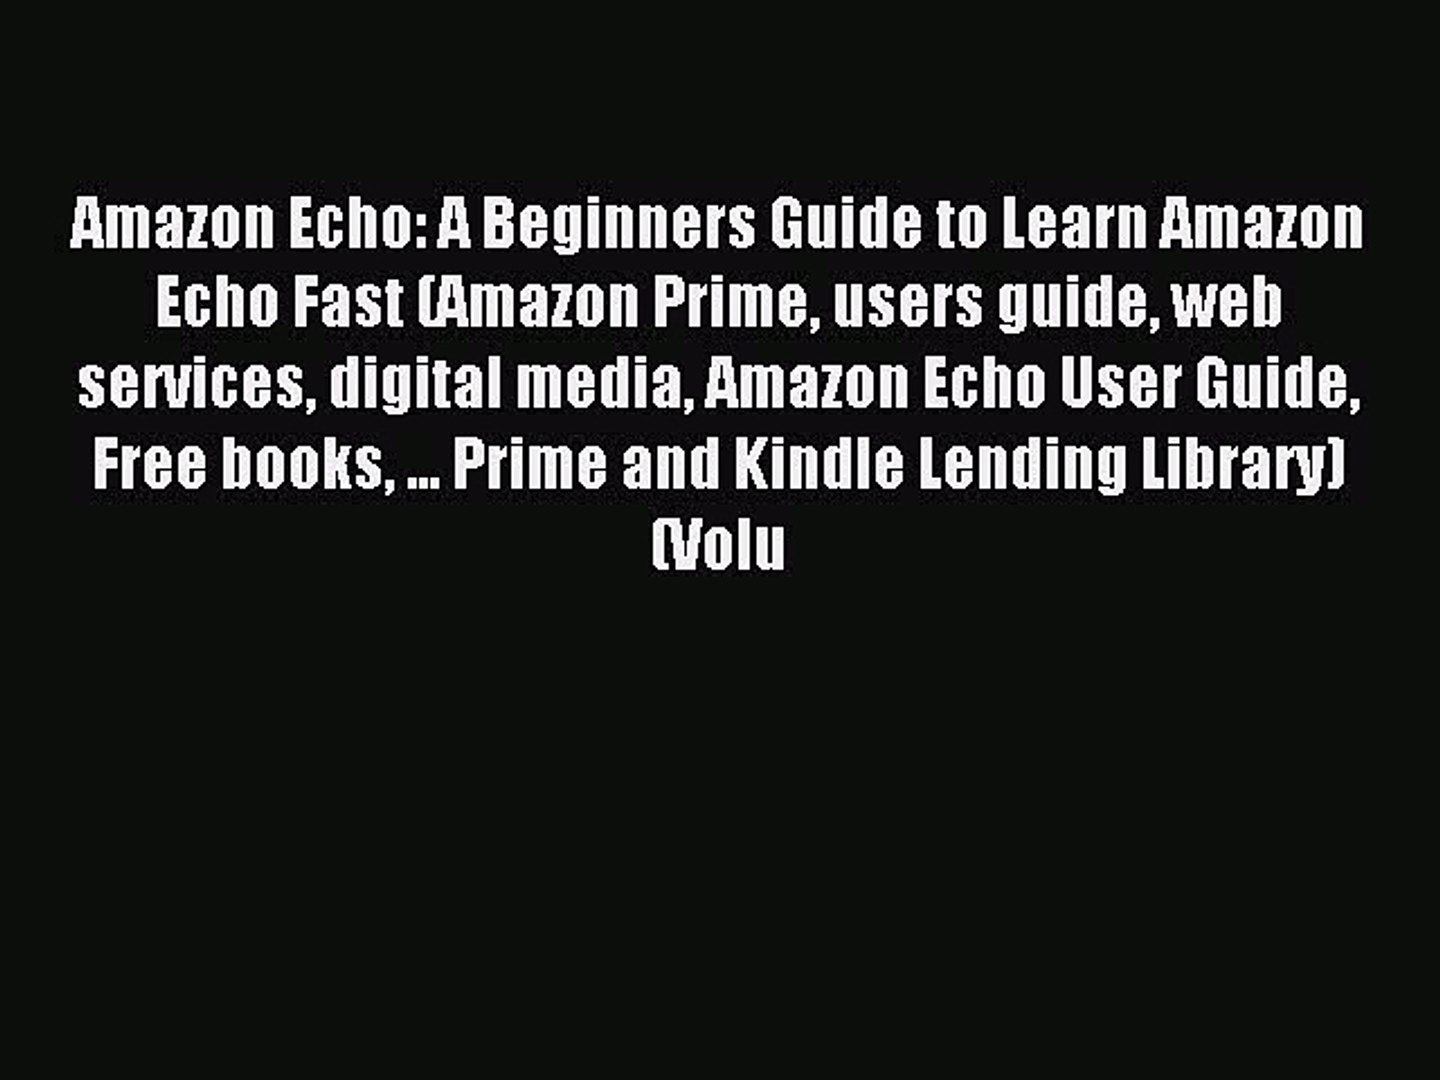 Read Amazon Echo: A Beginners Guide to Learn Amazon Echo Fast (Amazon Prime users guide web